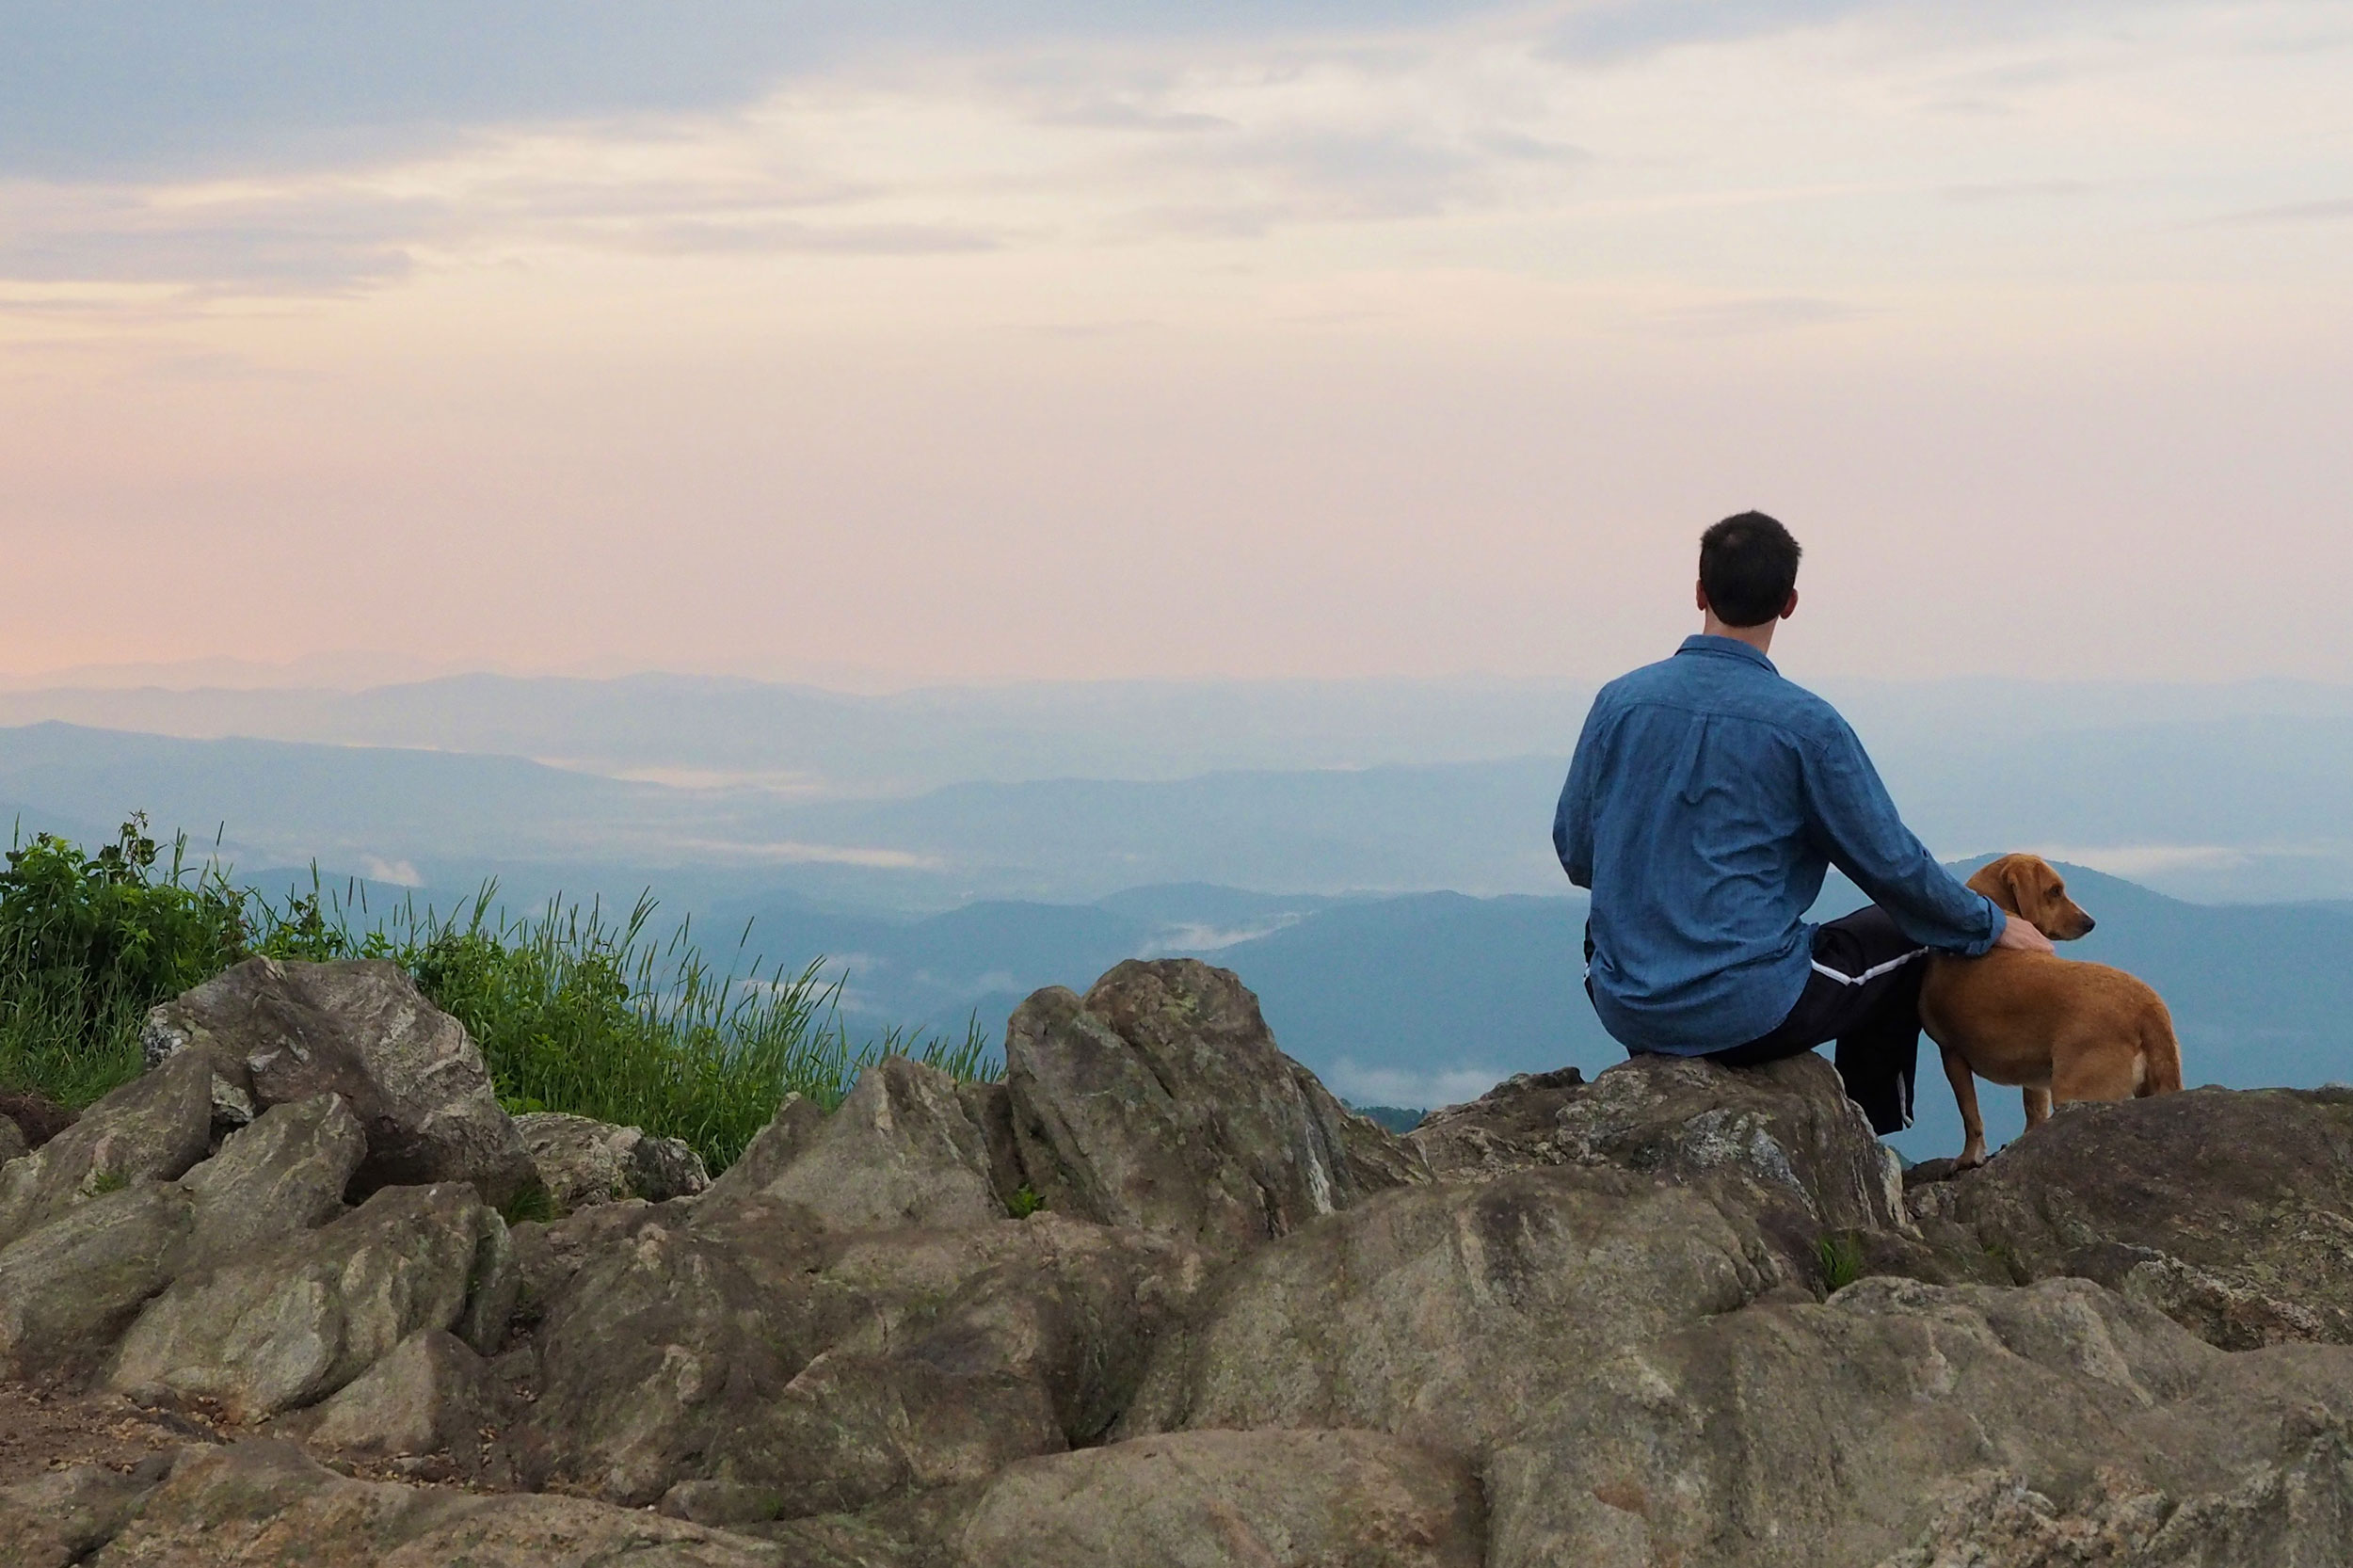 6 Stept to Mindfully Deal with Difficult Emotion